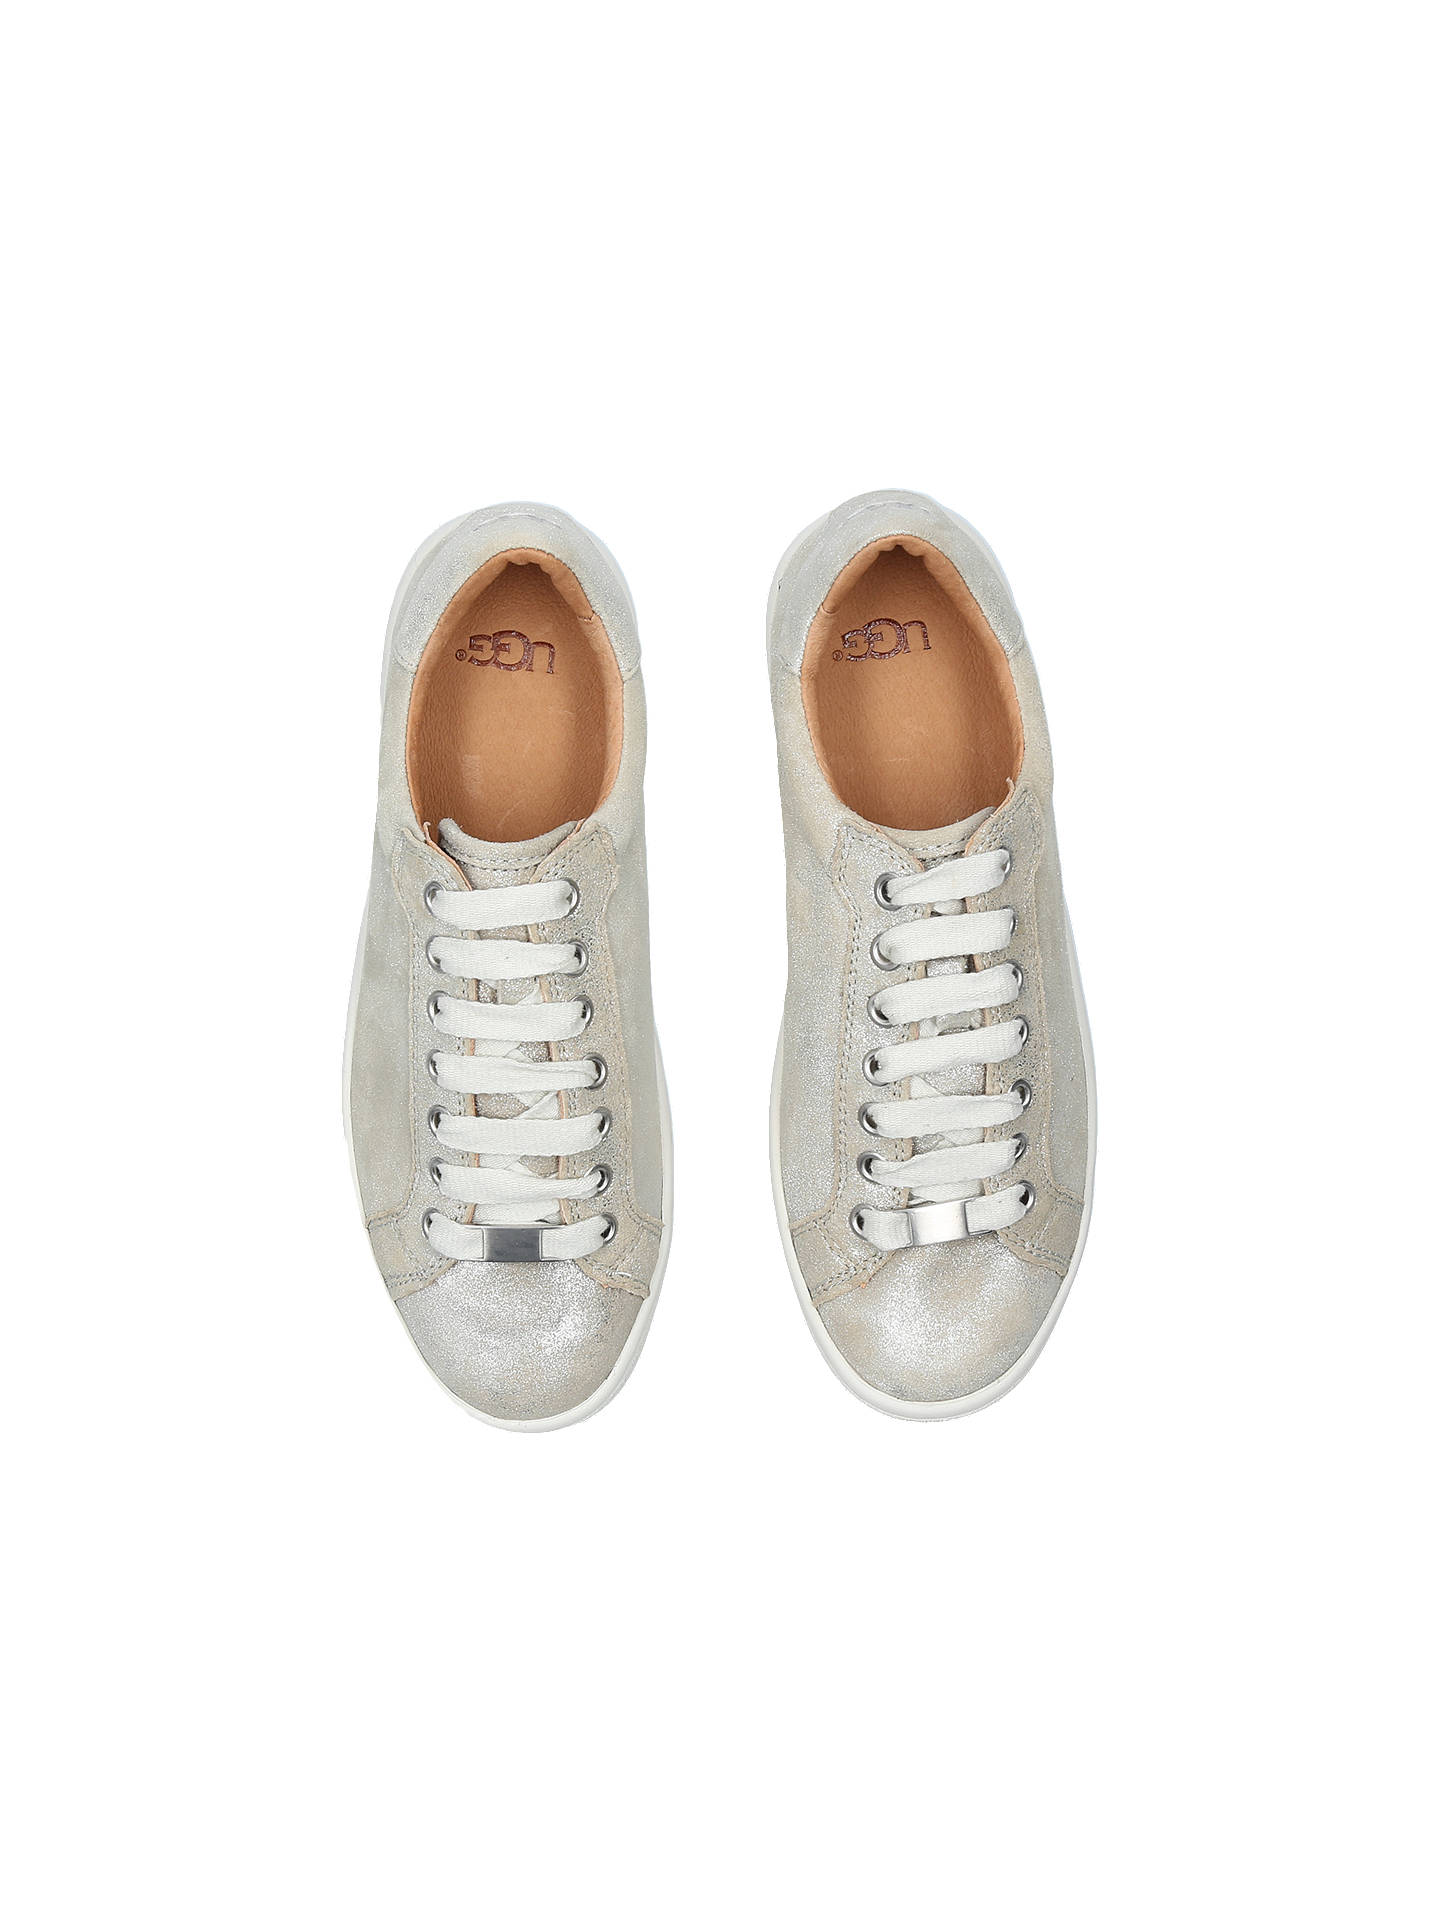 2acdc5fecb0 UGG Milo Lace Up Trainers, Silver Suede at John Lewis & Partners